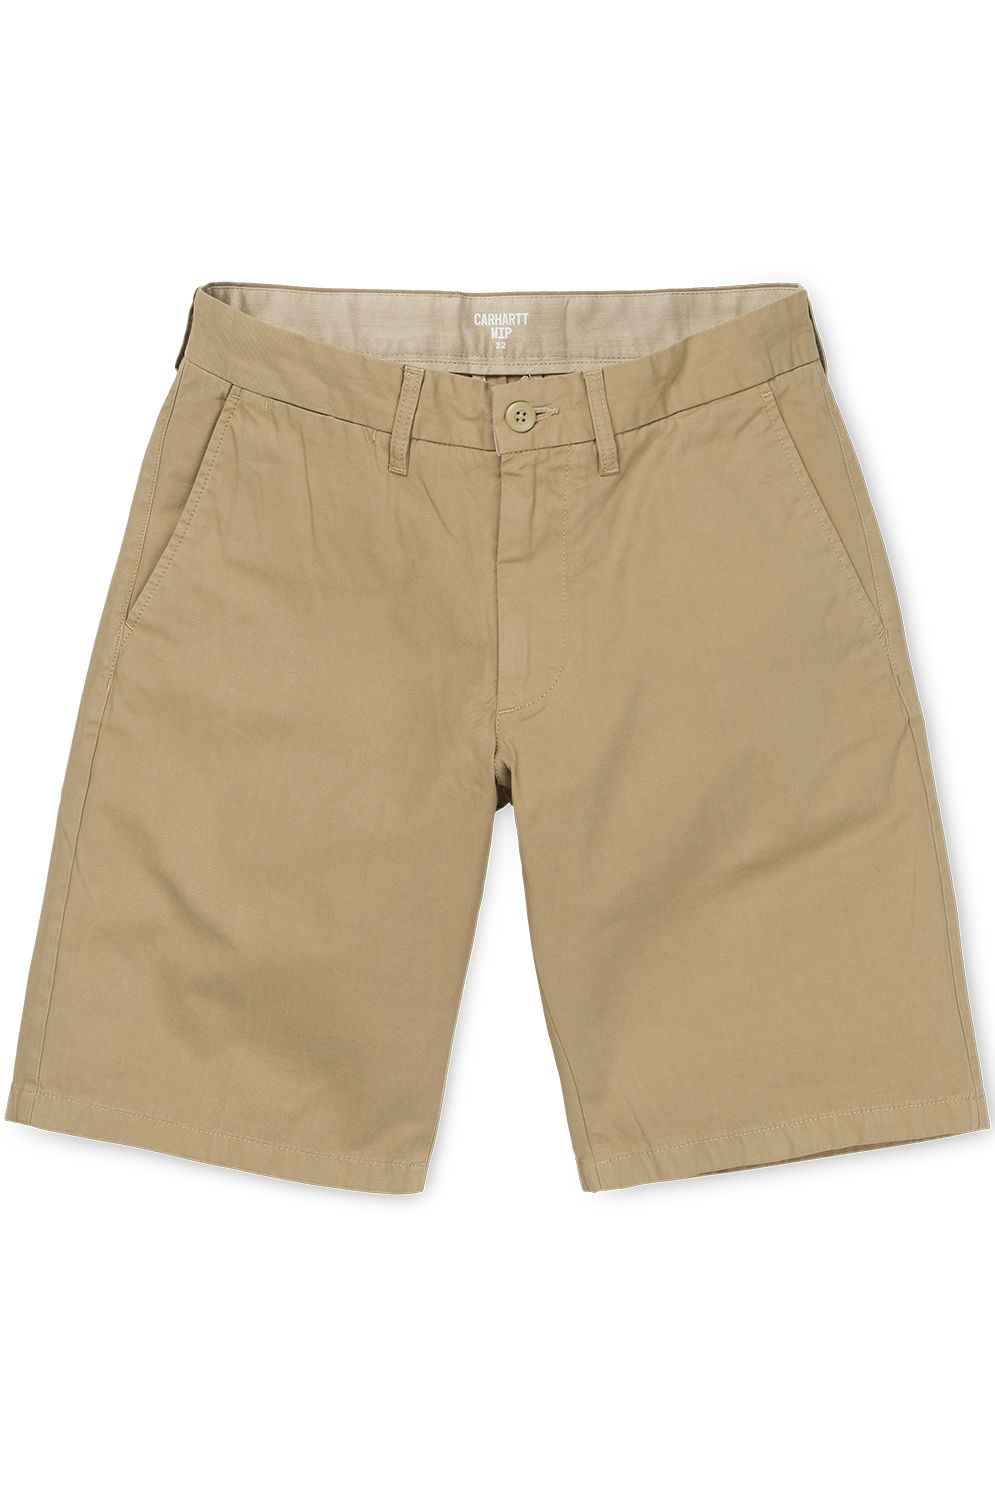 Walkshorts Carhartt WIP JOHNSON Leather